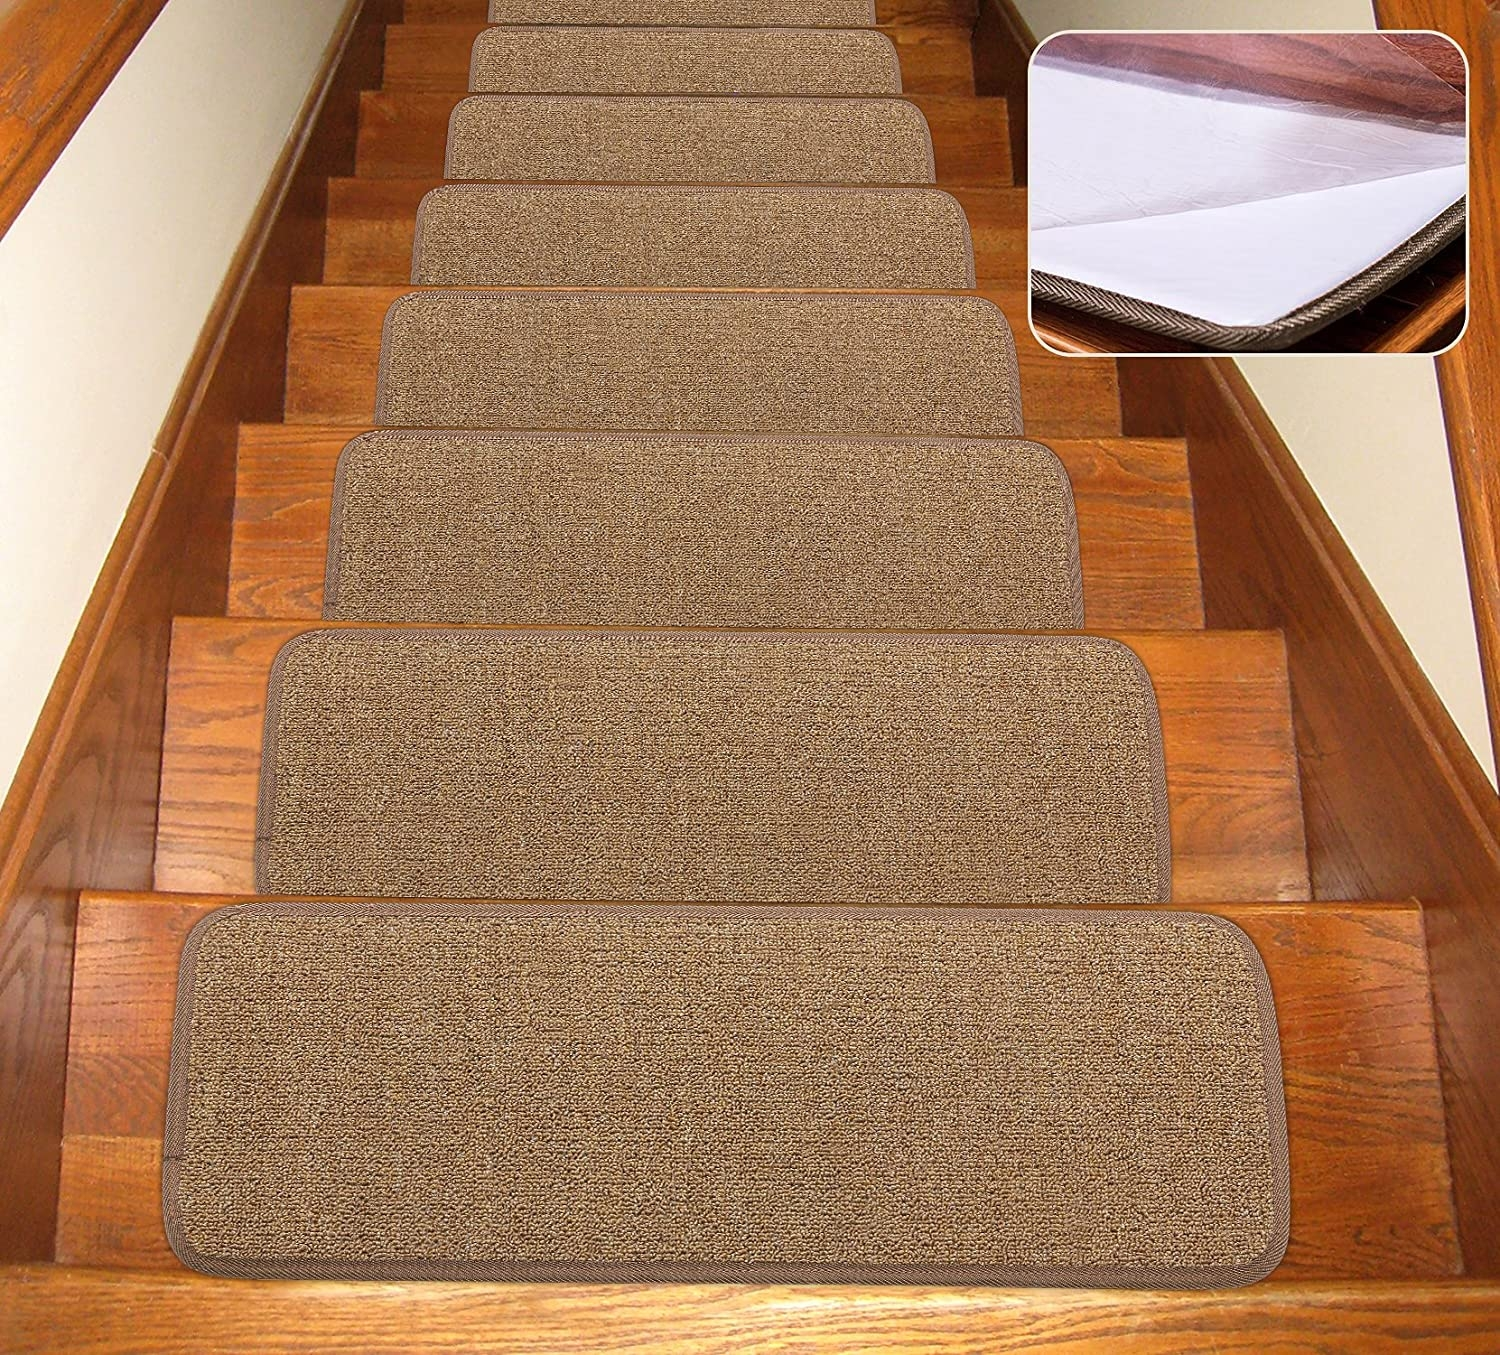 Seloom Stair Treads Carpet Non Slip With Skid Resistant Rubber | Carpet Strips For Steps | Border | Carpeted | Adhesive | Builder Grade | Victorian